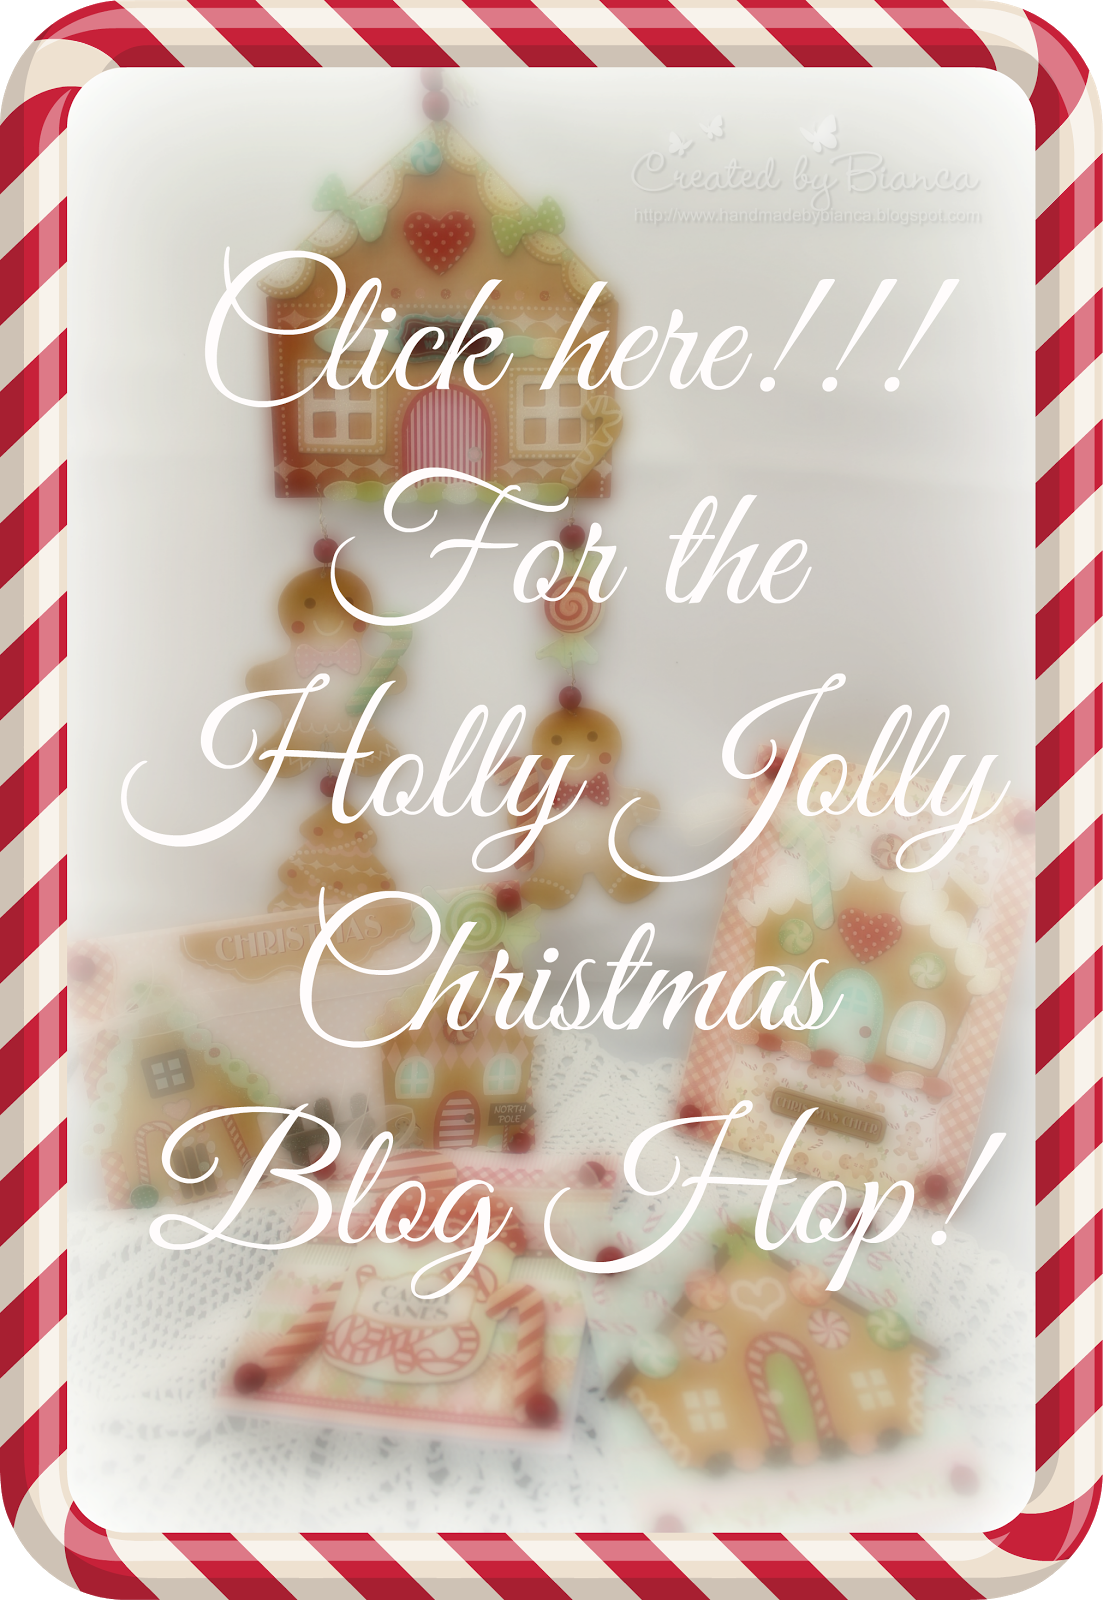 This way to the Holly Jolly Blog Hop!